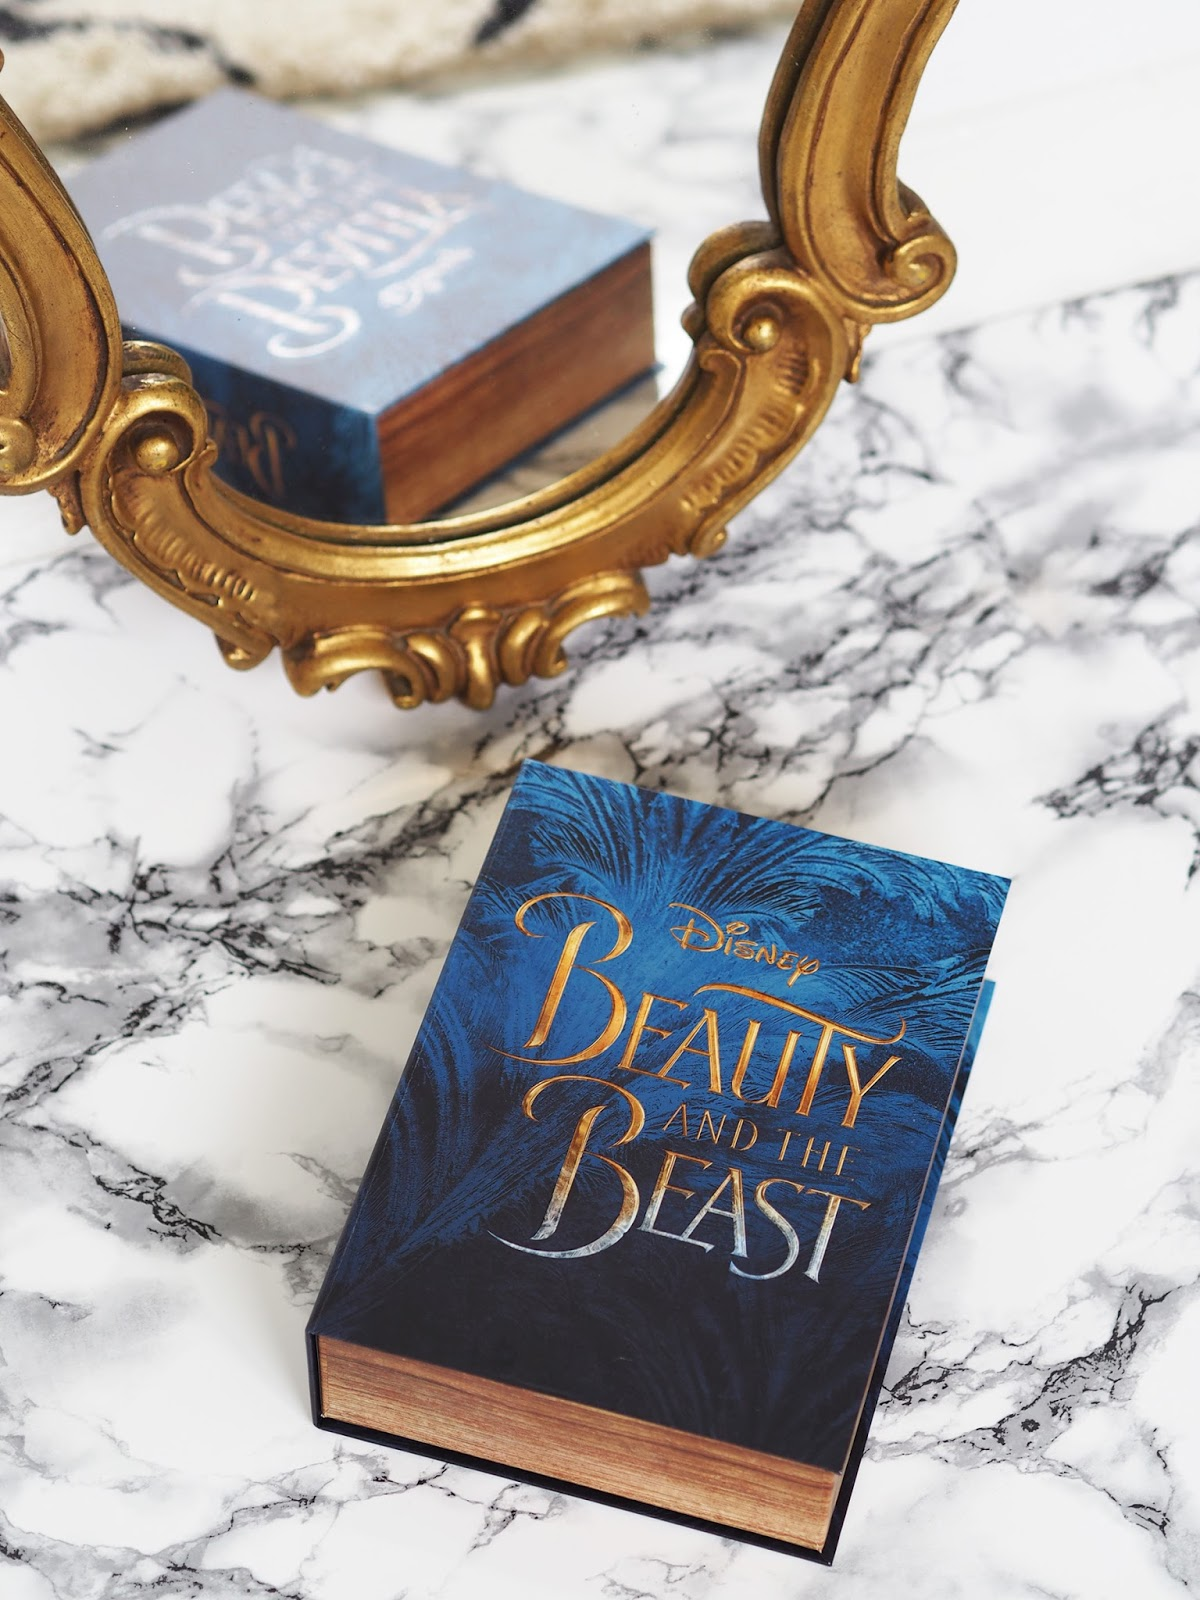 Latest In Beauty - Beauty And The Beast Beauty Box review